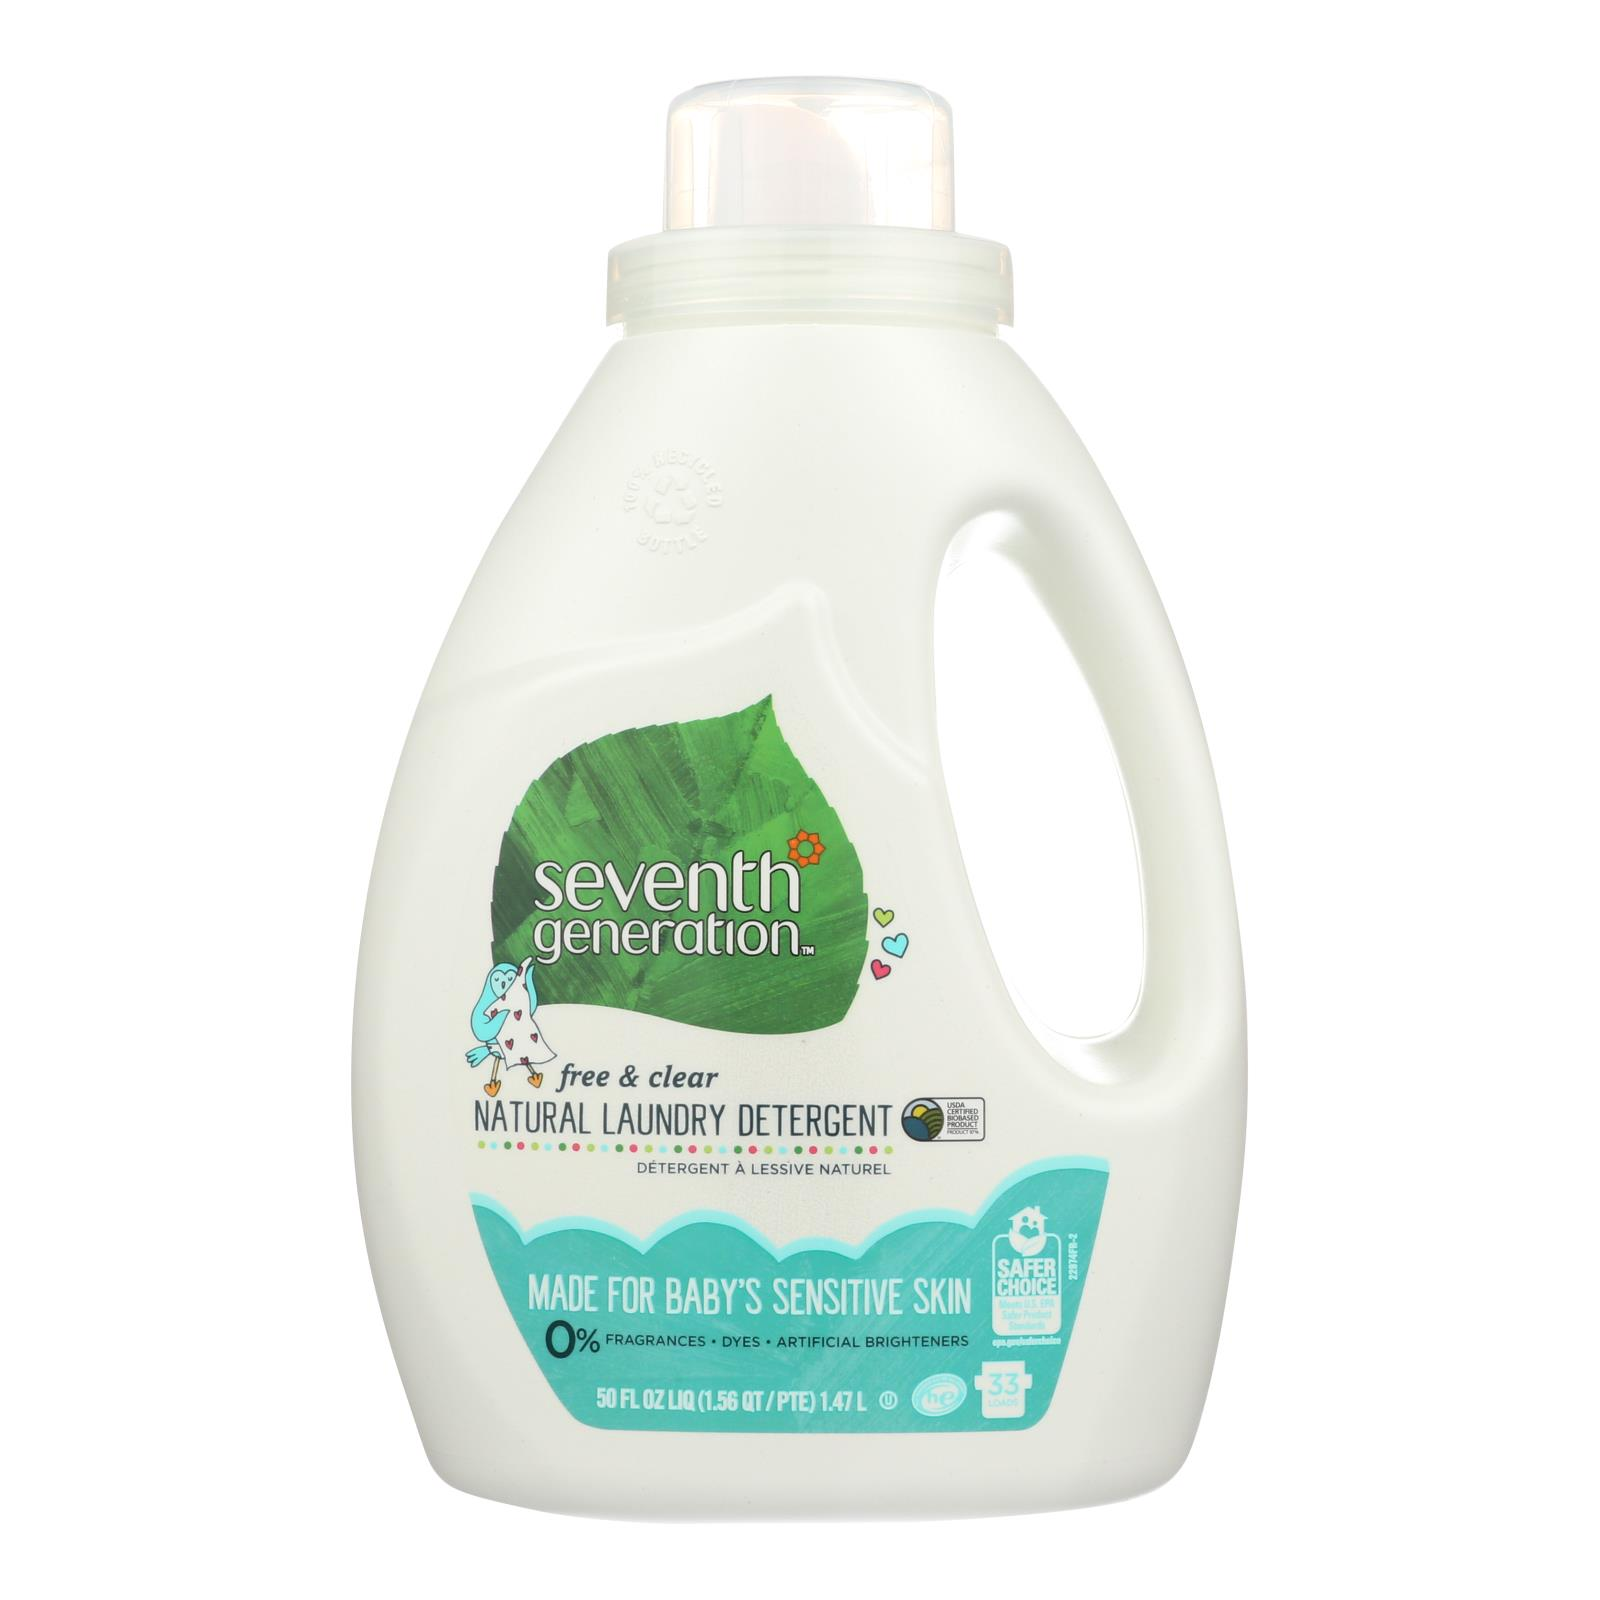 Seventh Generation - Liquid Laundry Detergent - Baby Free and Clear - Case of 6 - 50 fl oz.